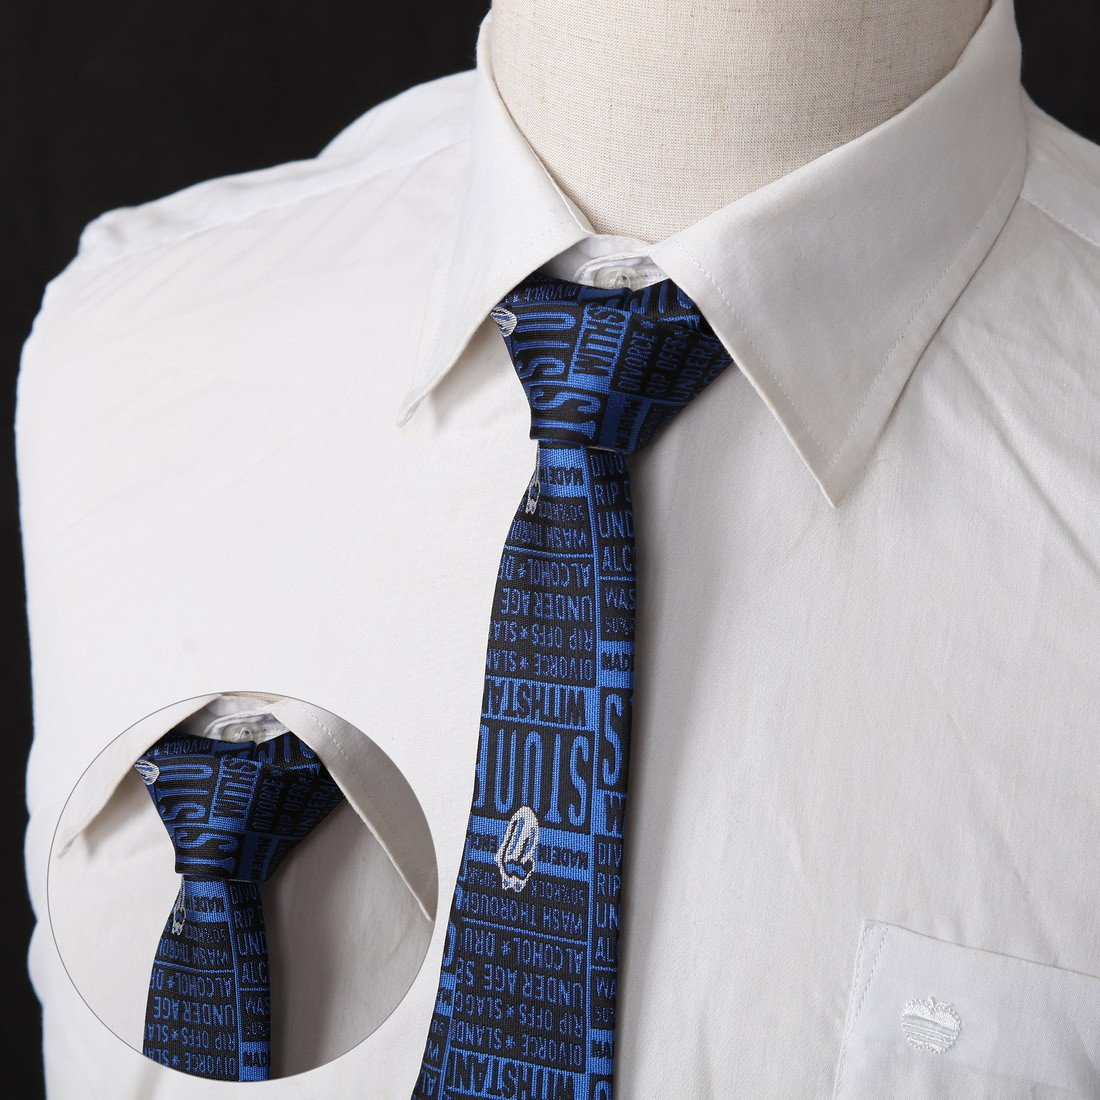 DANF0039 Series Colors 5cm-width Polyester Slim Ties Creative Fashion Skinny Ties - 5 Styles Available Inspire For Business By Dan Smith by Dan Smith (Image #5)